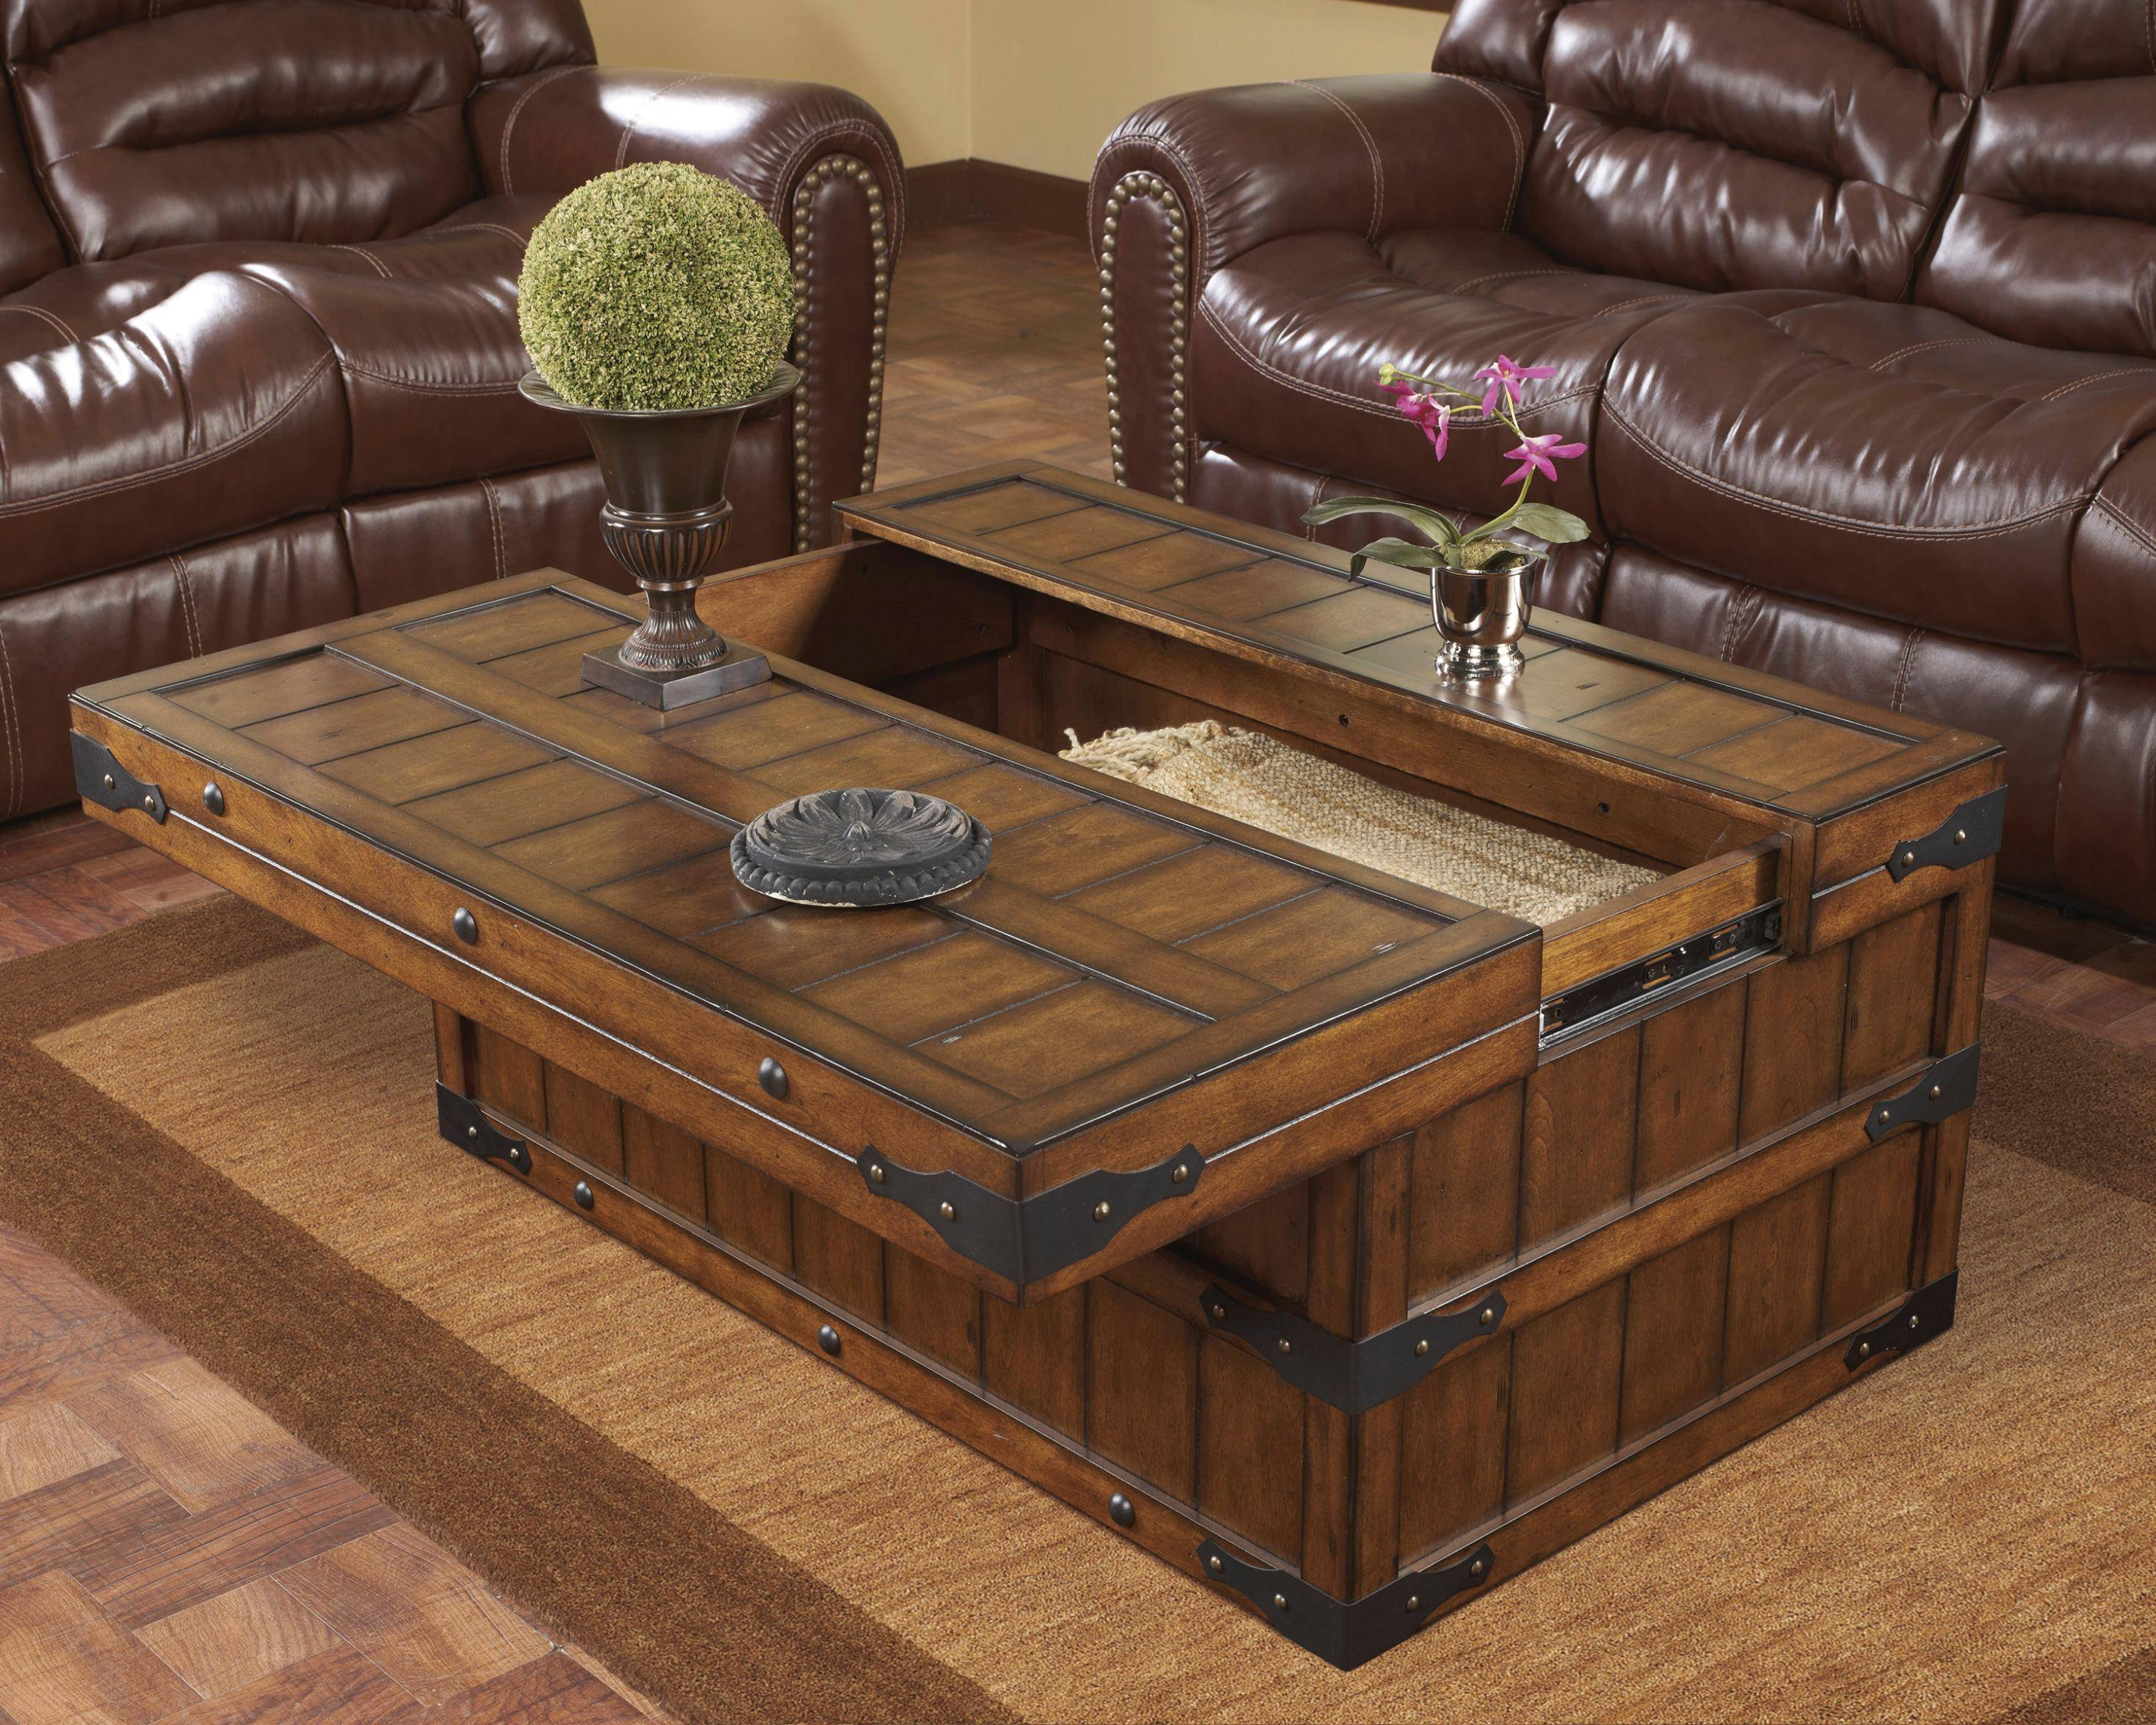 Coffee Table: Brilliant Rustic Trunk Coffee Table Ideas Square regarding Square Storage Coffee Tables (Image 9 of 30)